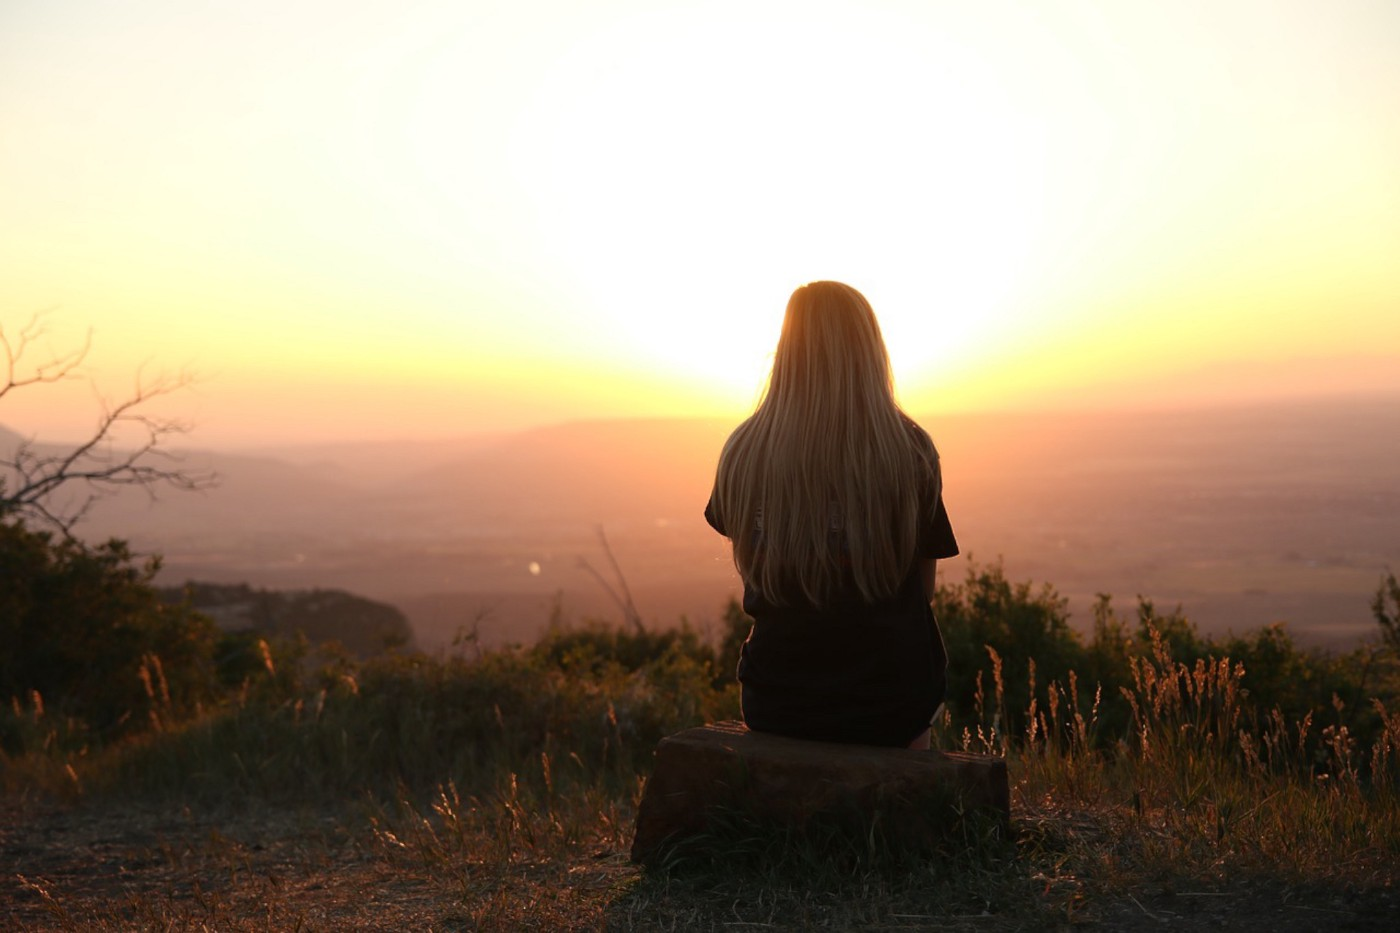 Photo of a woman, watching the sun set, while sitting in a field on a tree trunk.